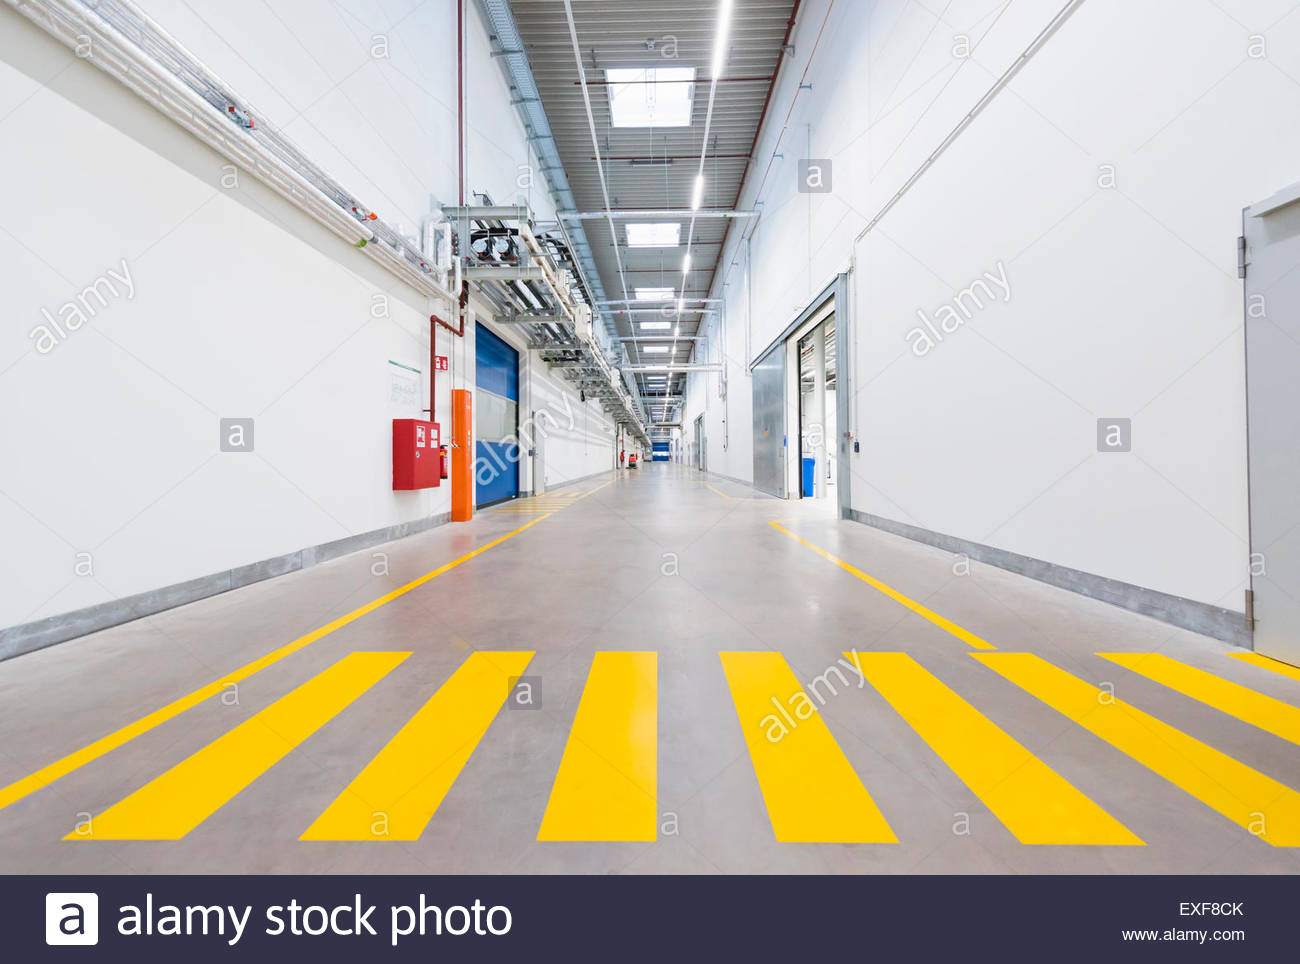 Factory corridor with yellow pedestrian crossing - Stock Image